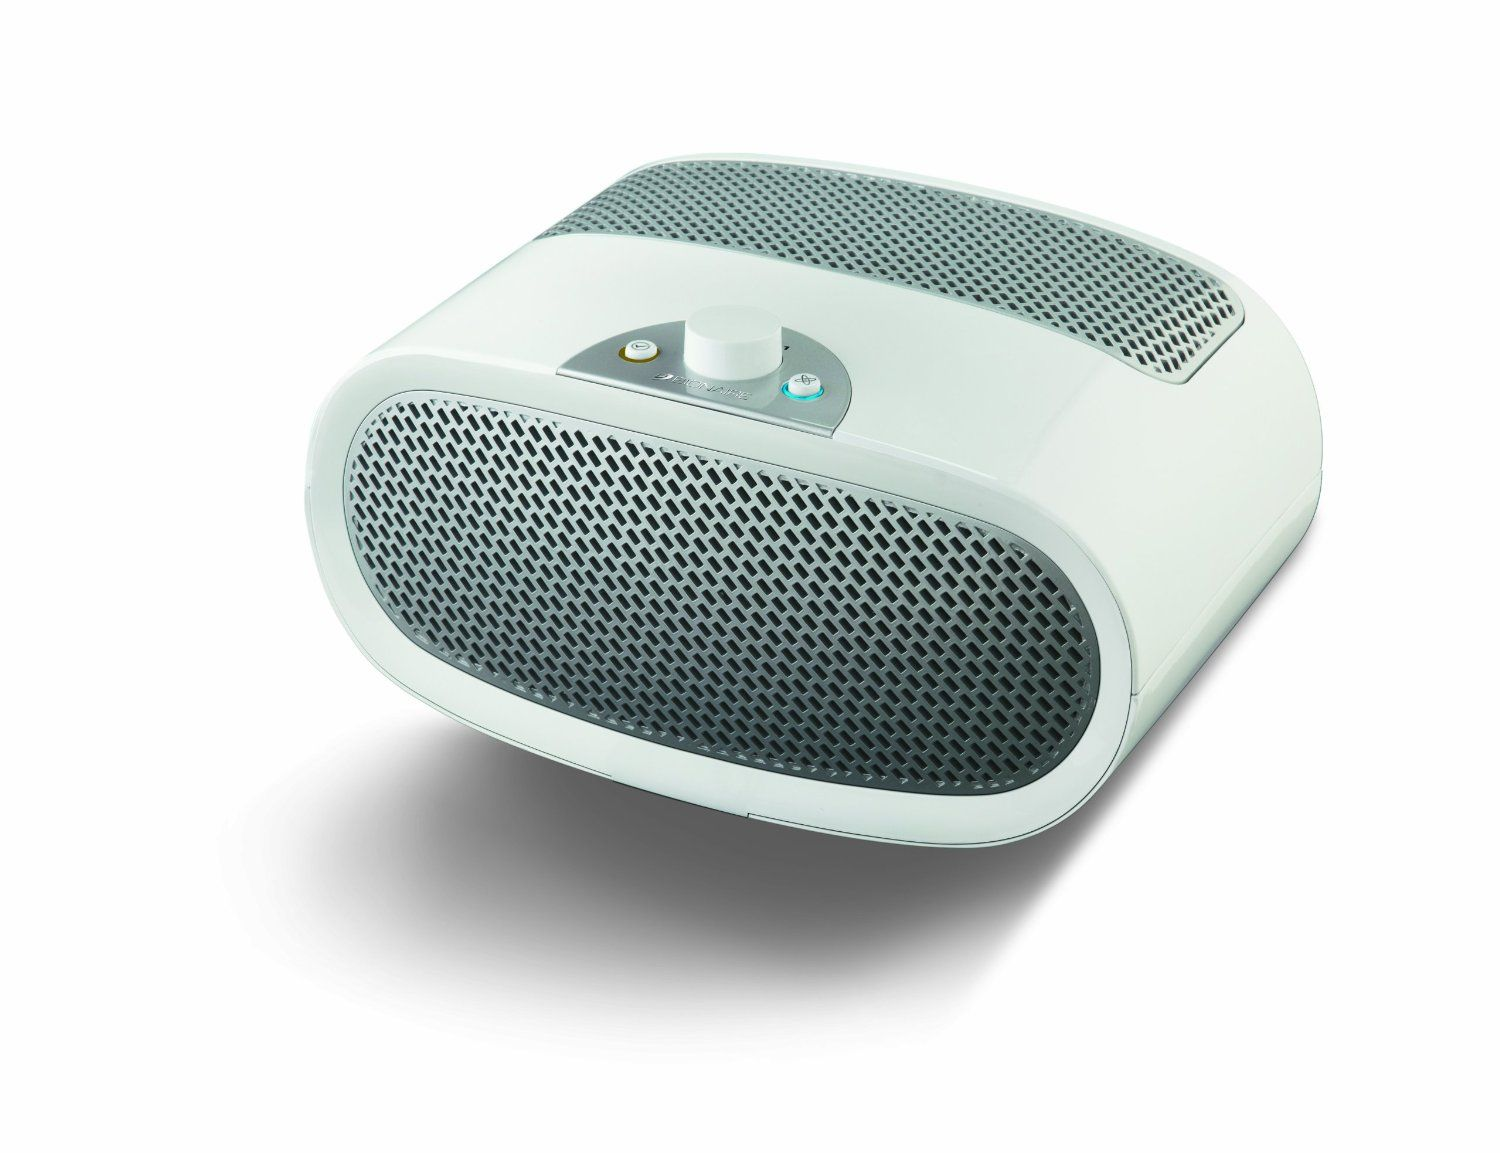 Bionaire Compact Air Purifier with Dual Positioning Air